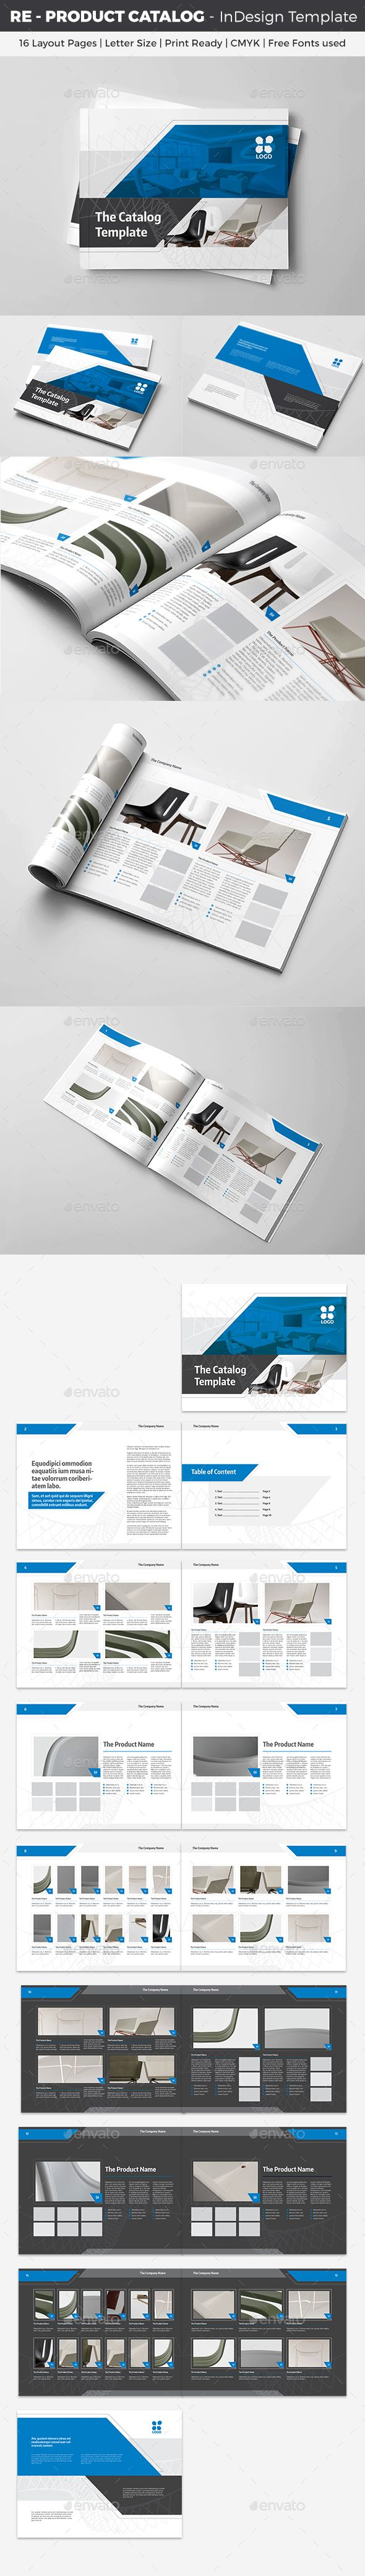 RE - Product Catalog InDesign Template | Indesign templates, Product ...